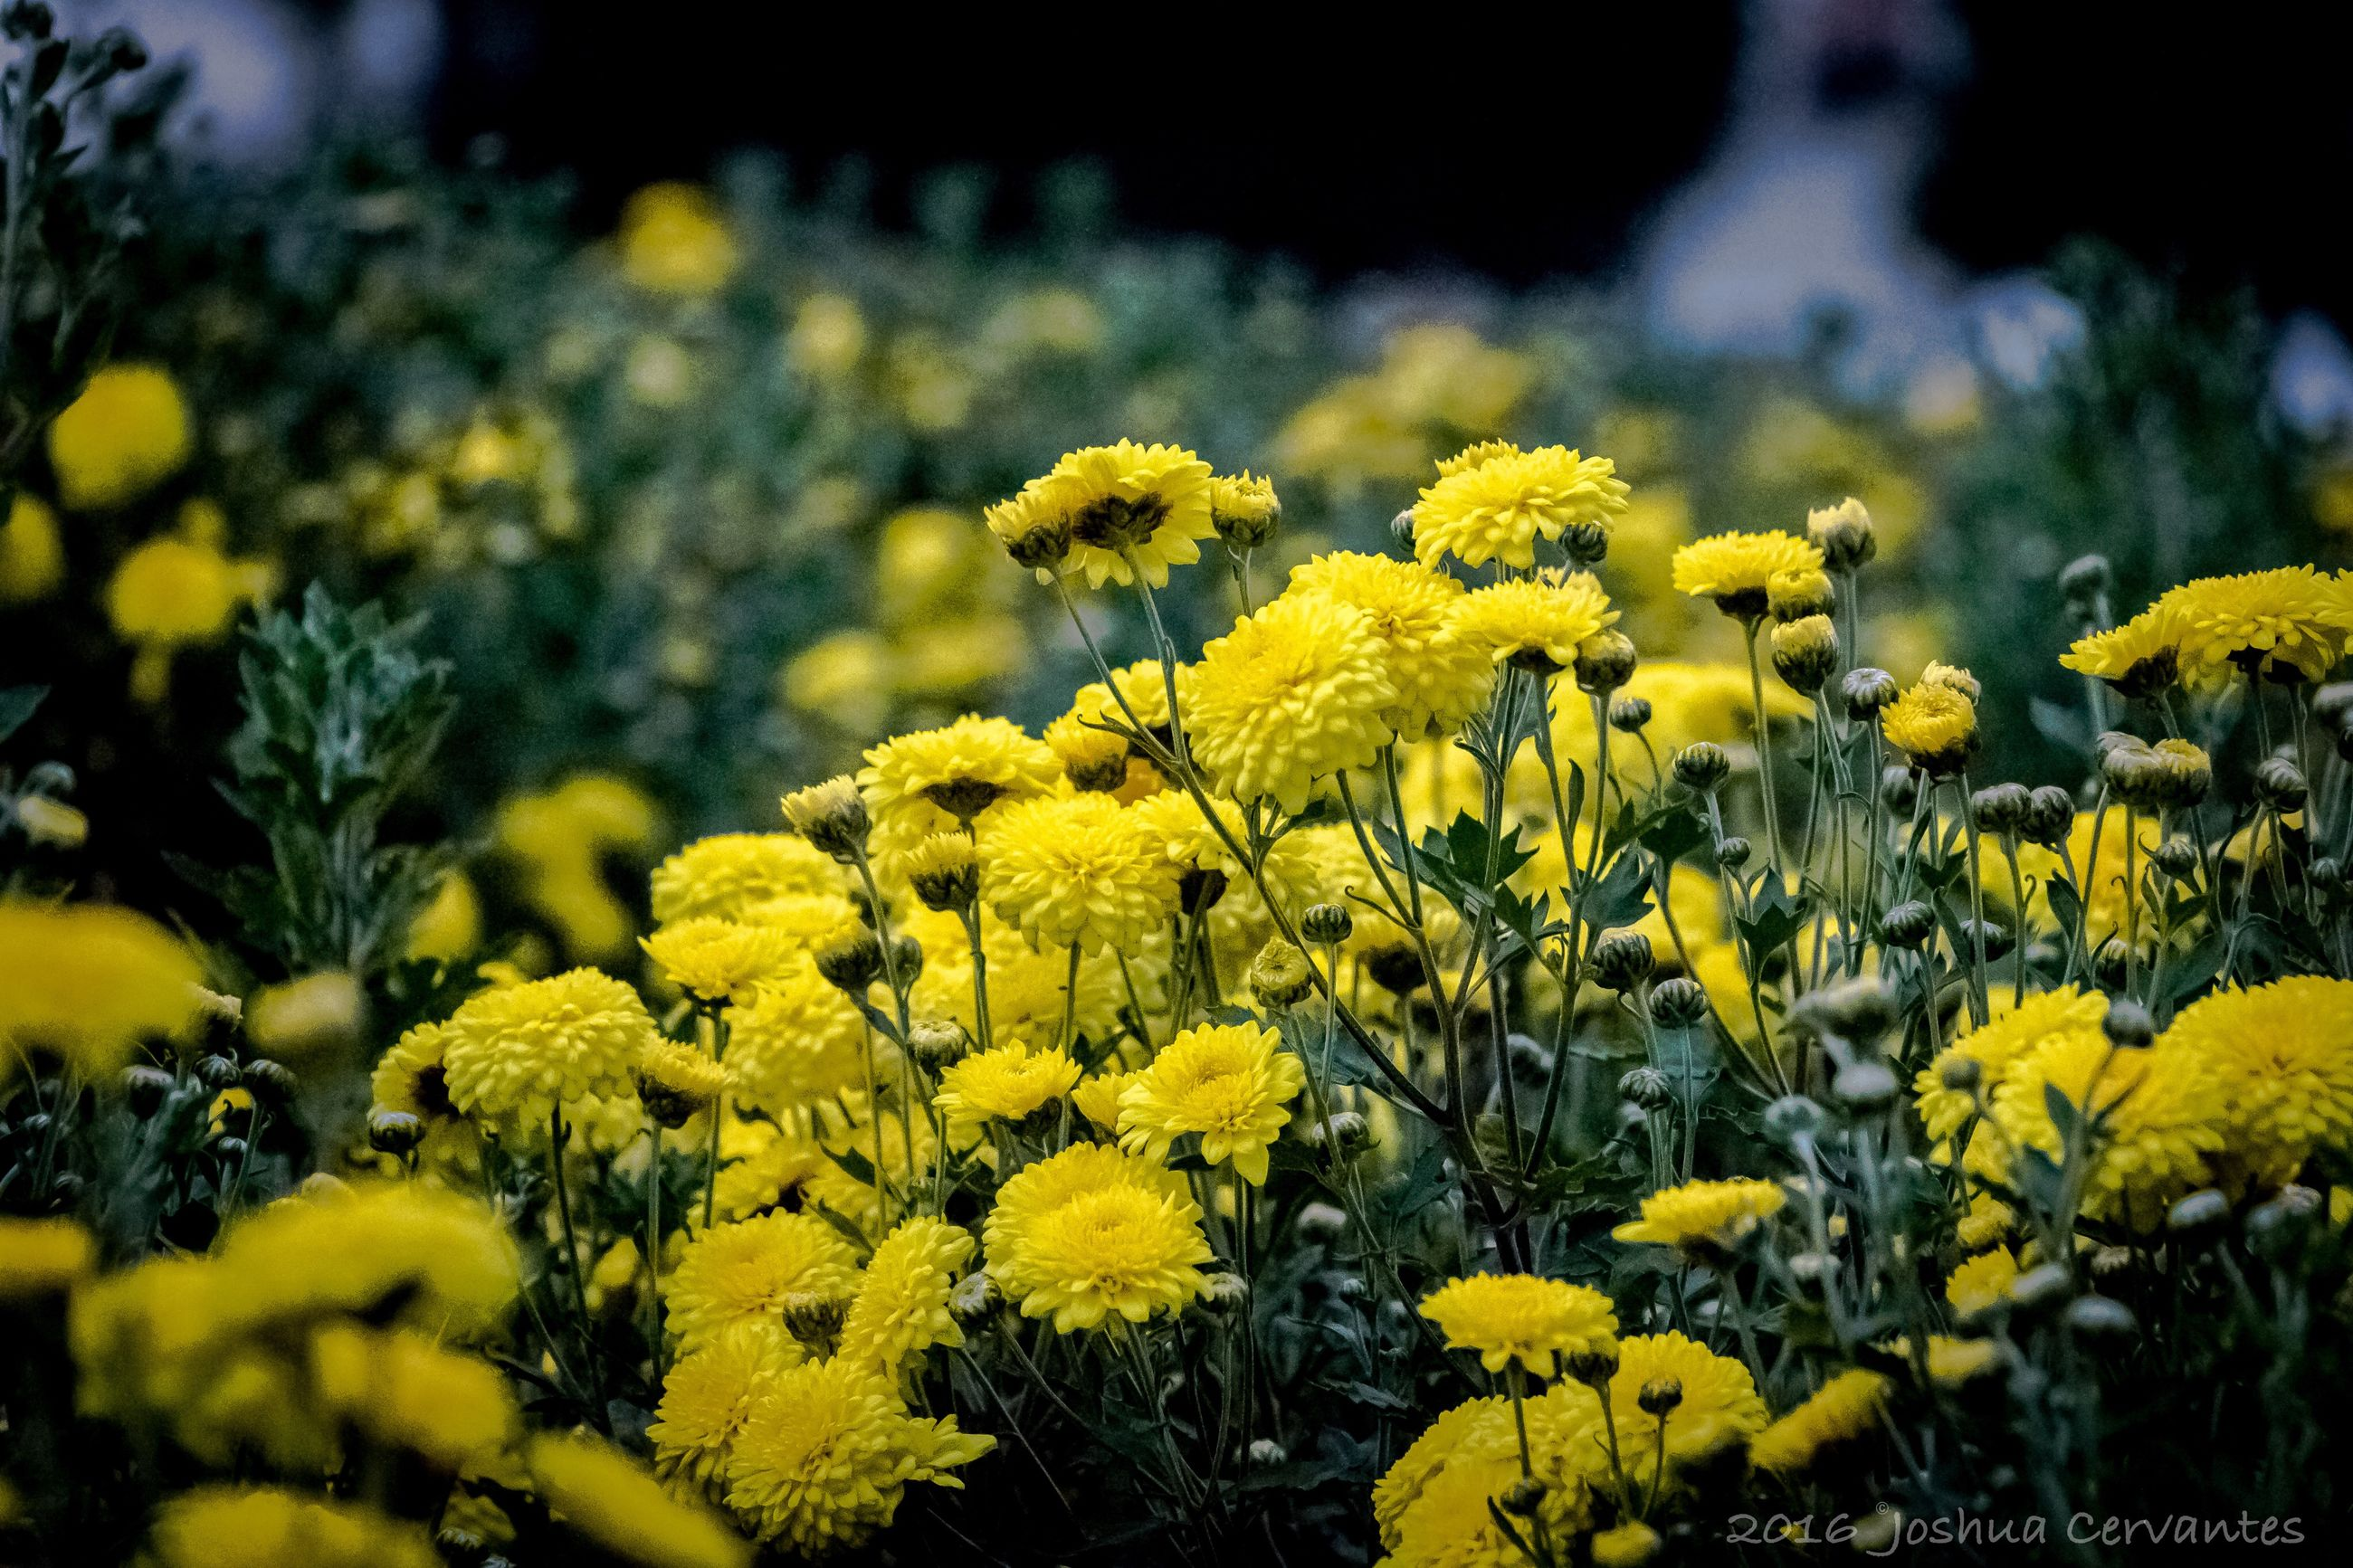 freshness, yellow, fragility, flower, growth, petal, season, beauty in nature, vibrant color, springtime, flower head, in bloom, close-up, nature, plant, blossom, botany, macro, selective focus, day, field, blooming, flowering plant, focus on foreground, bloom, soft focus, wildflower, uncultivated, formal garden